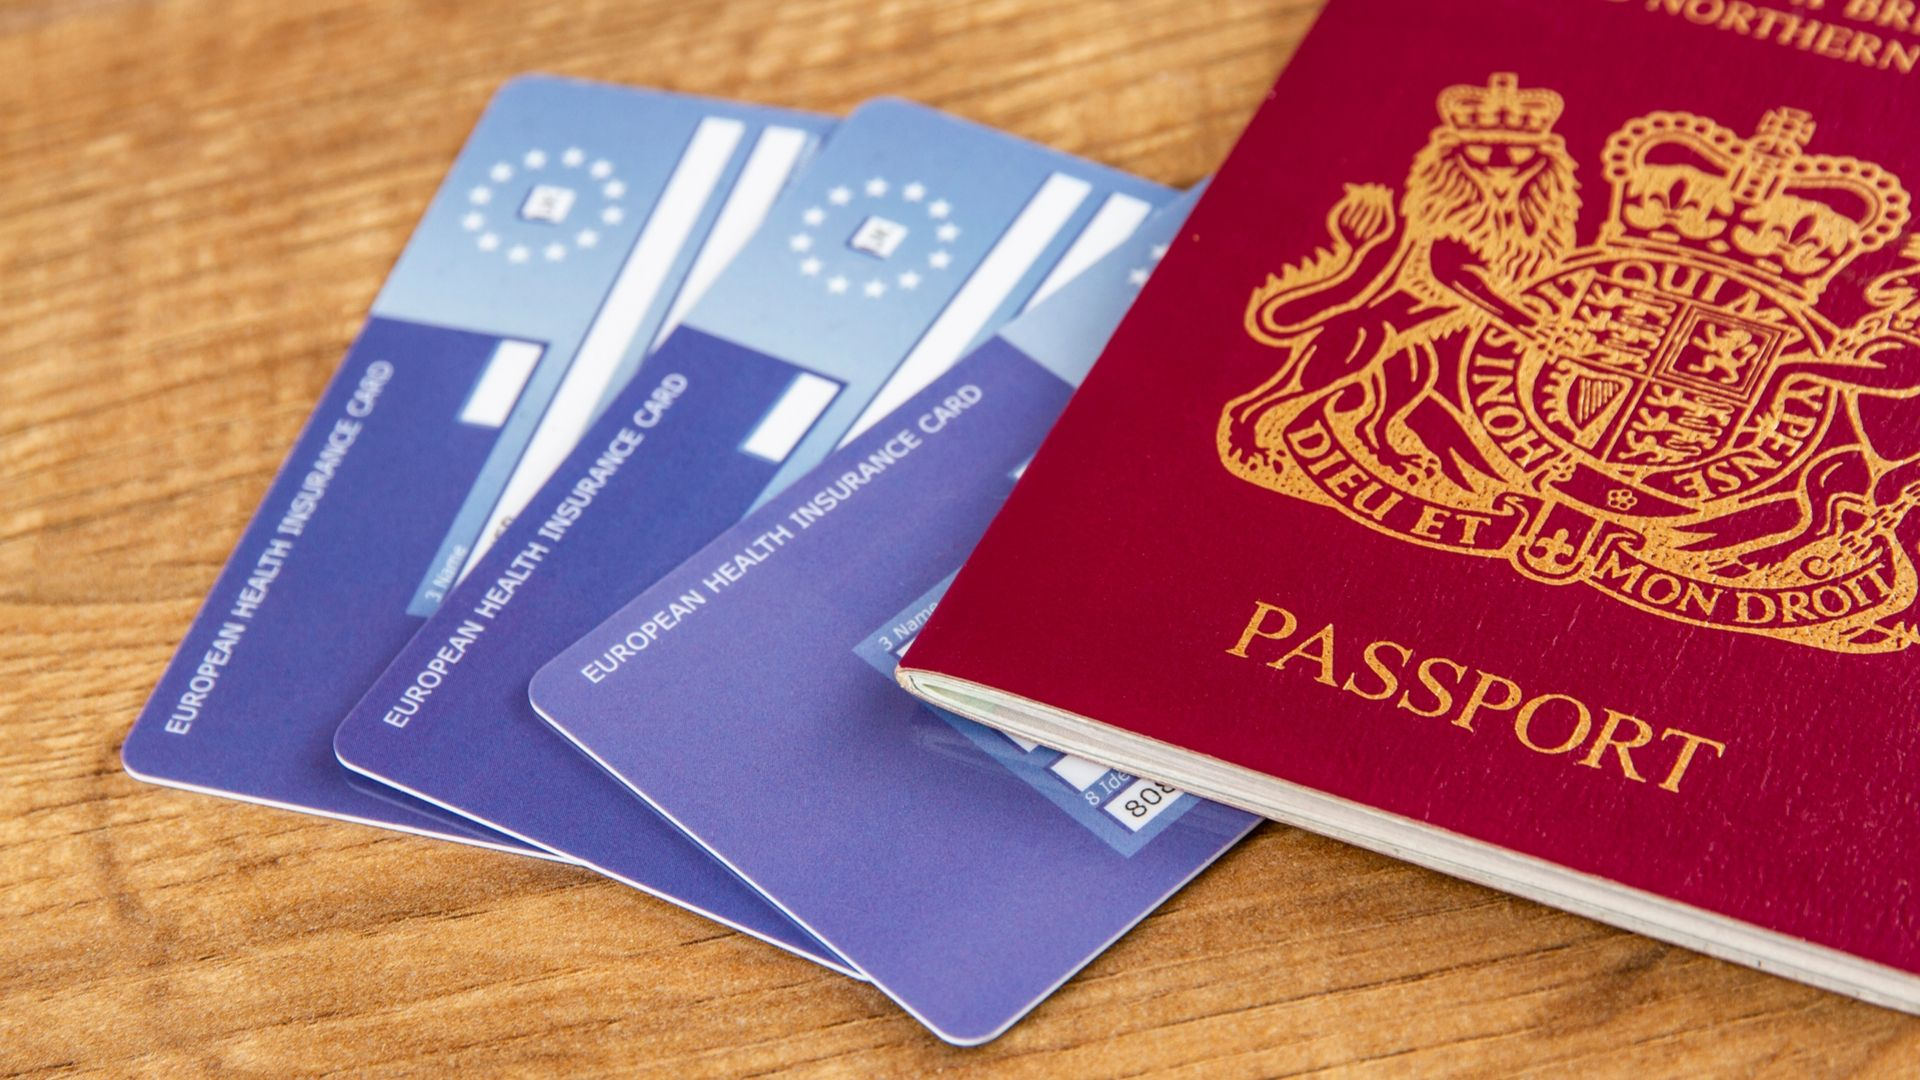 Image of three EHIC cards and a British passport fanned out on a brown wooden desk